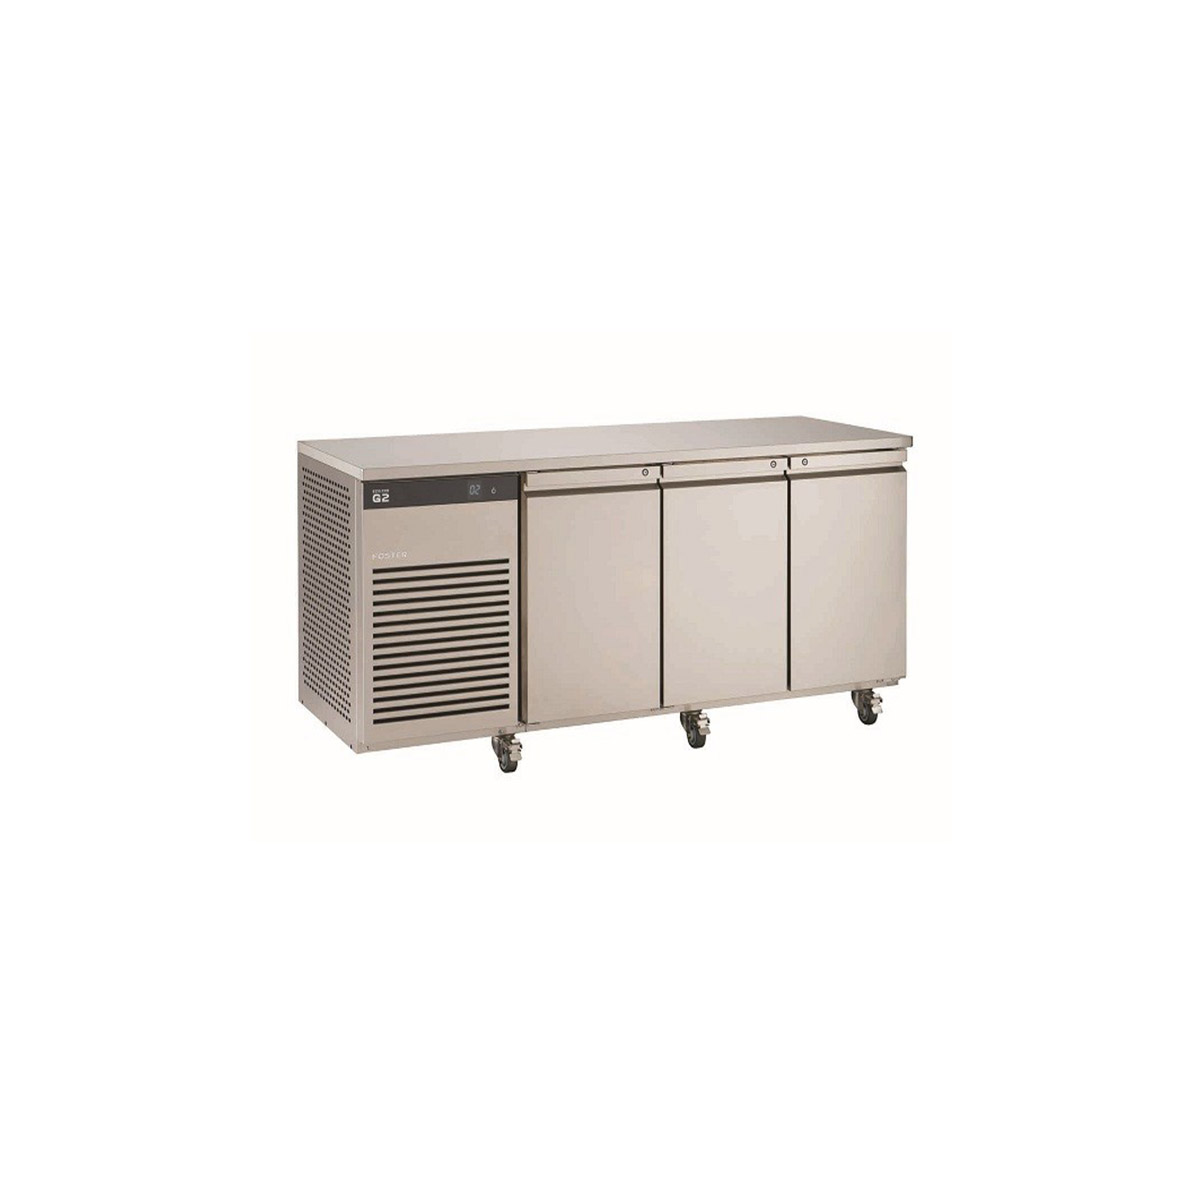 Foster EcoPro G2 EP1/3H (12-175) 435 Ltr Stainless Steel Refrigerated Counter